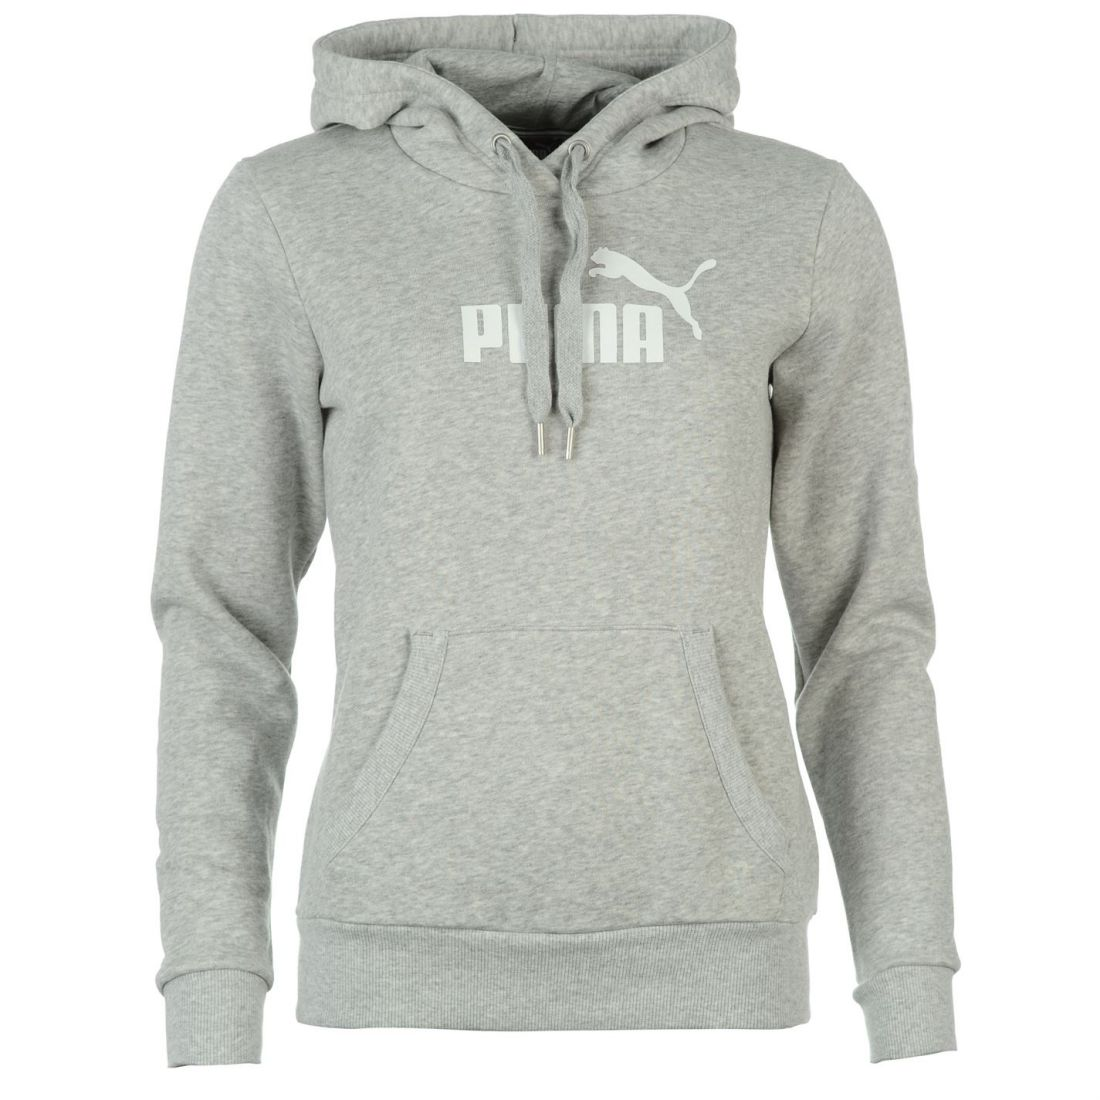 263fb12ca Puma Womens Ladies No1 Logo Hoody Hoodie Hooded Long Sleeve Top ...